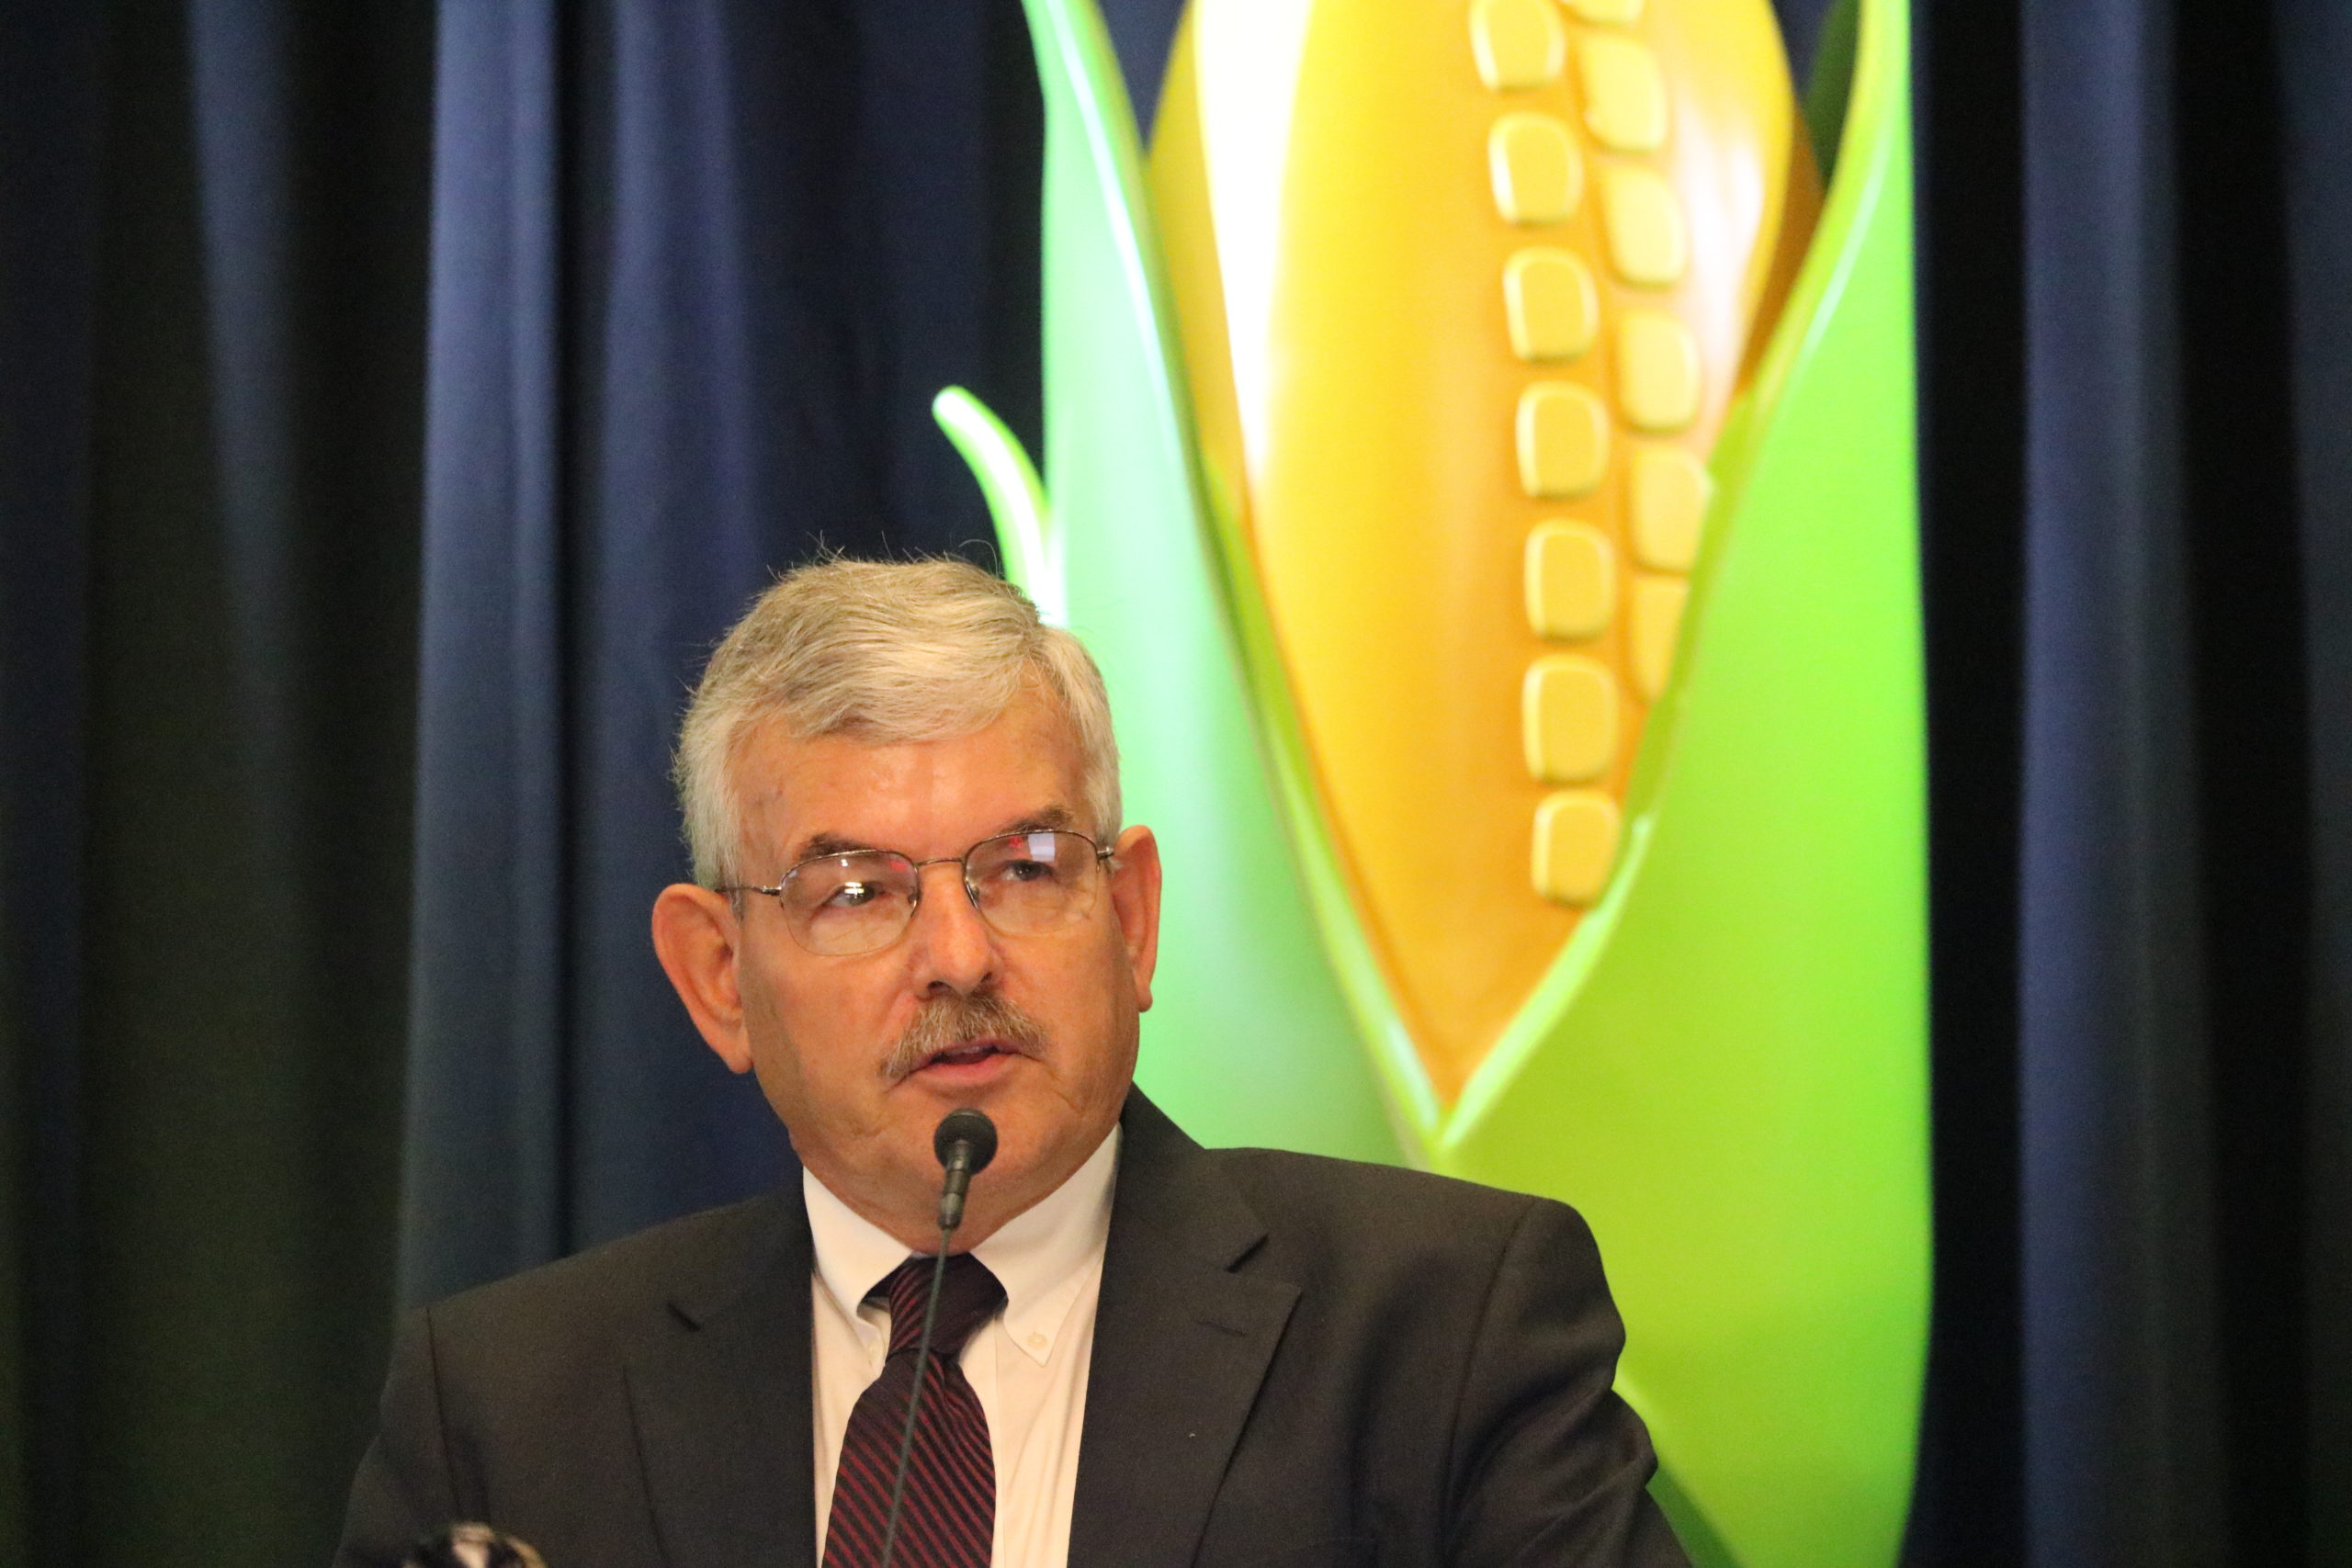 Lynn Chrisp, farmer from Hastings, addresses delegates and attendees at NCGA's Corn Congress in 2018.